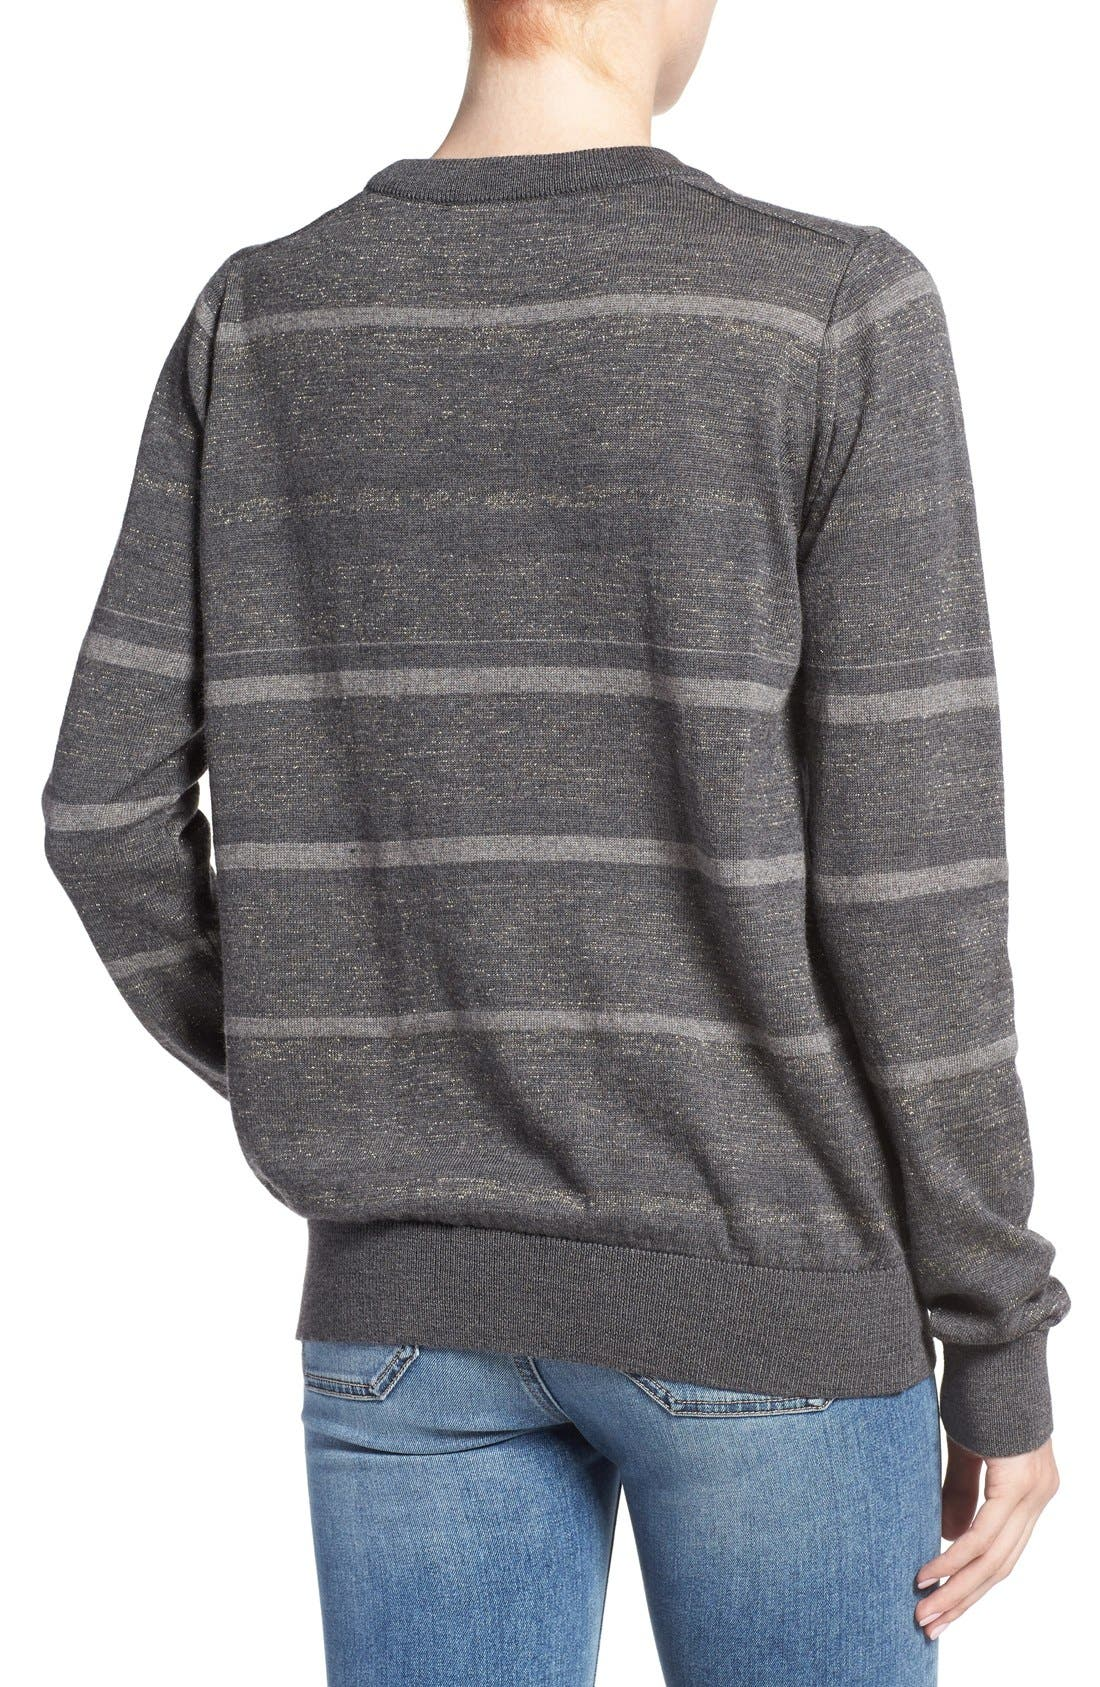 Alternate Image 2  - M.i.h. Jeans 'Falls' Metallic Stripe Merino Wool Sweater